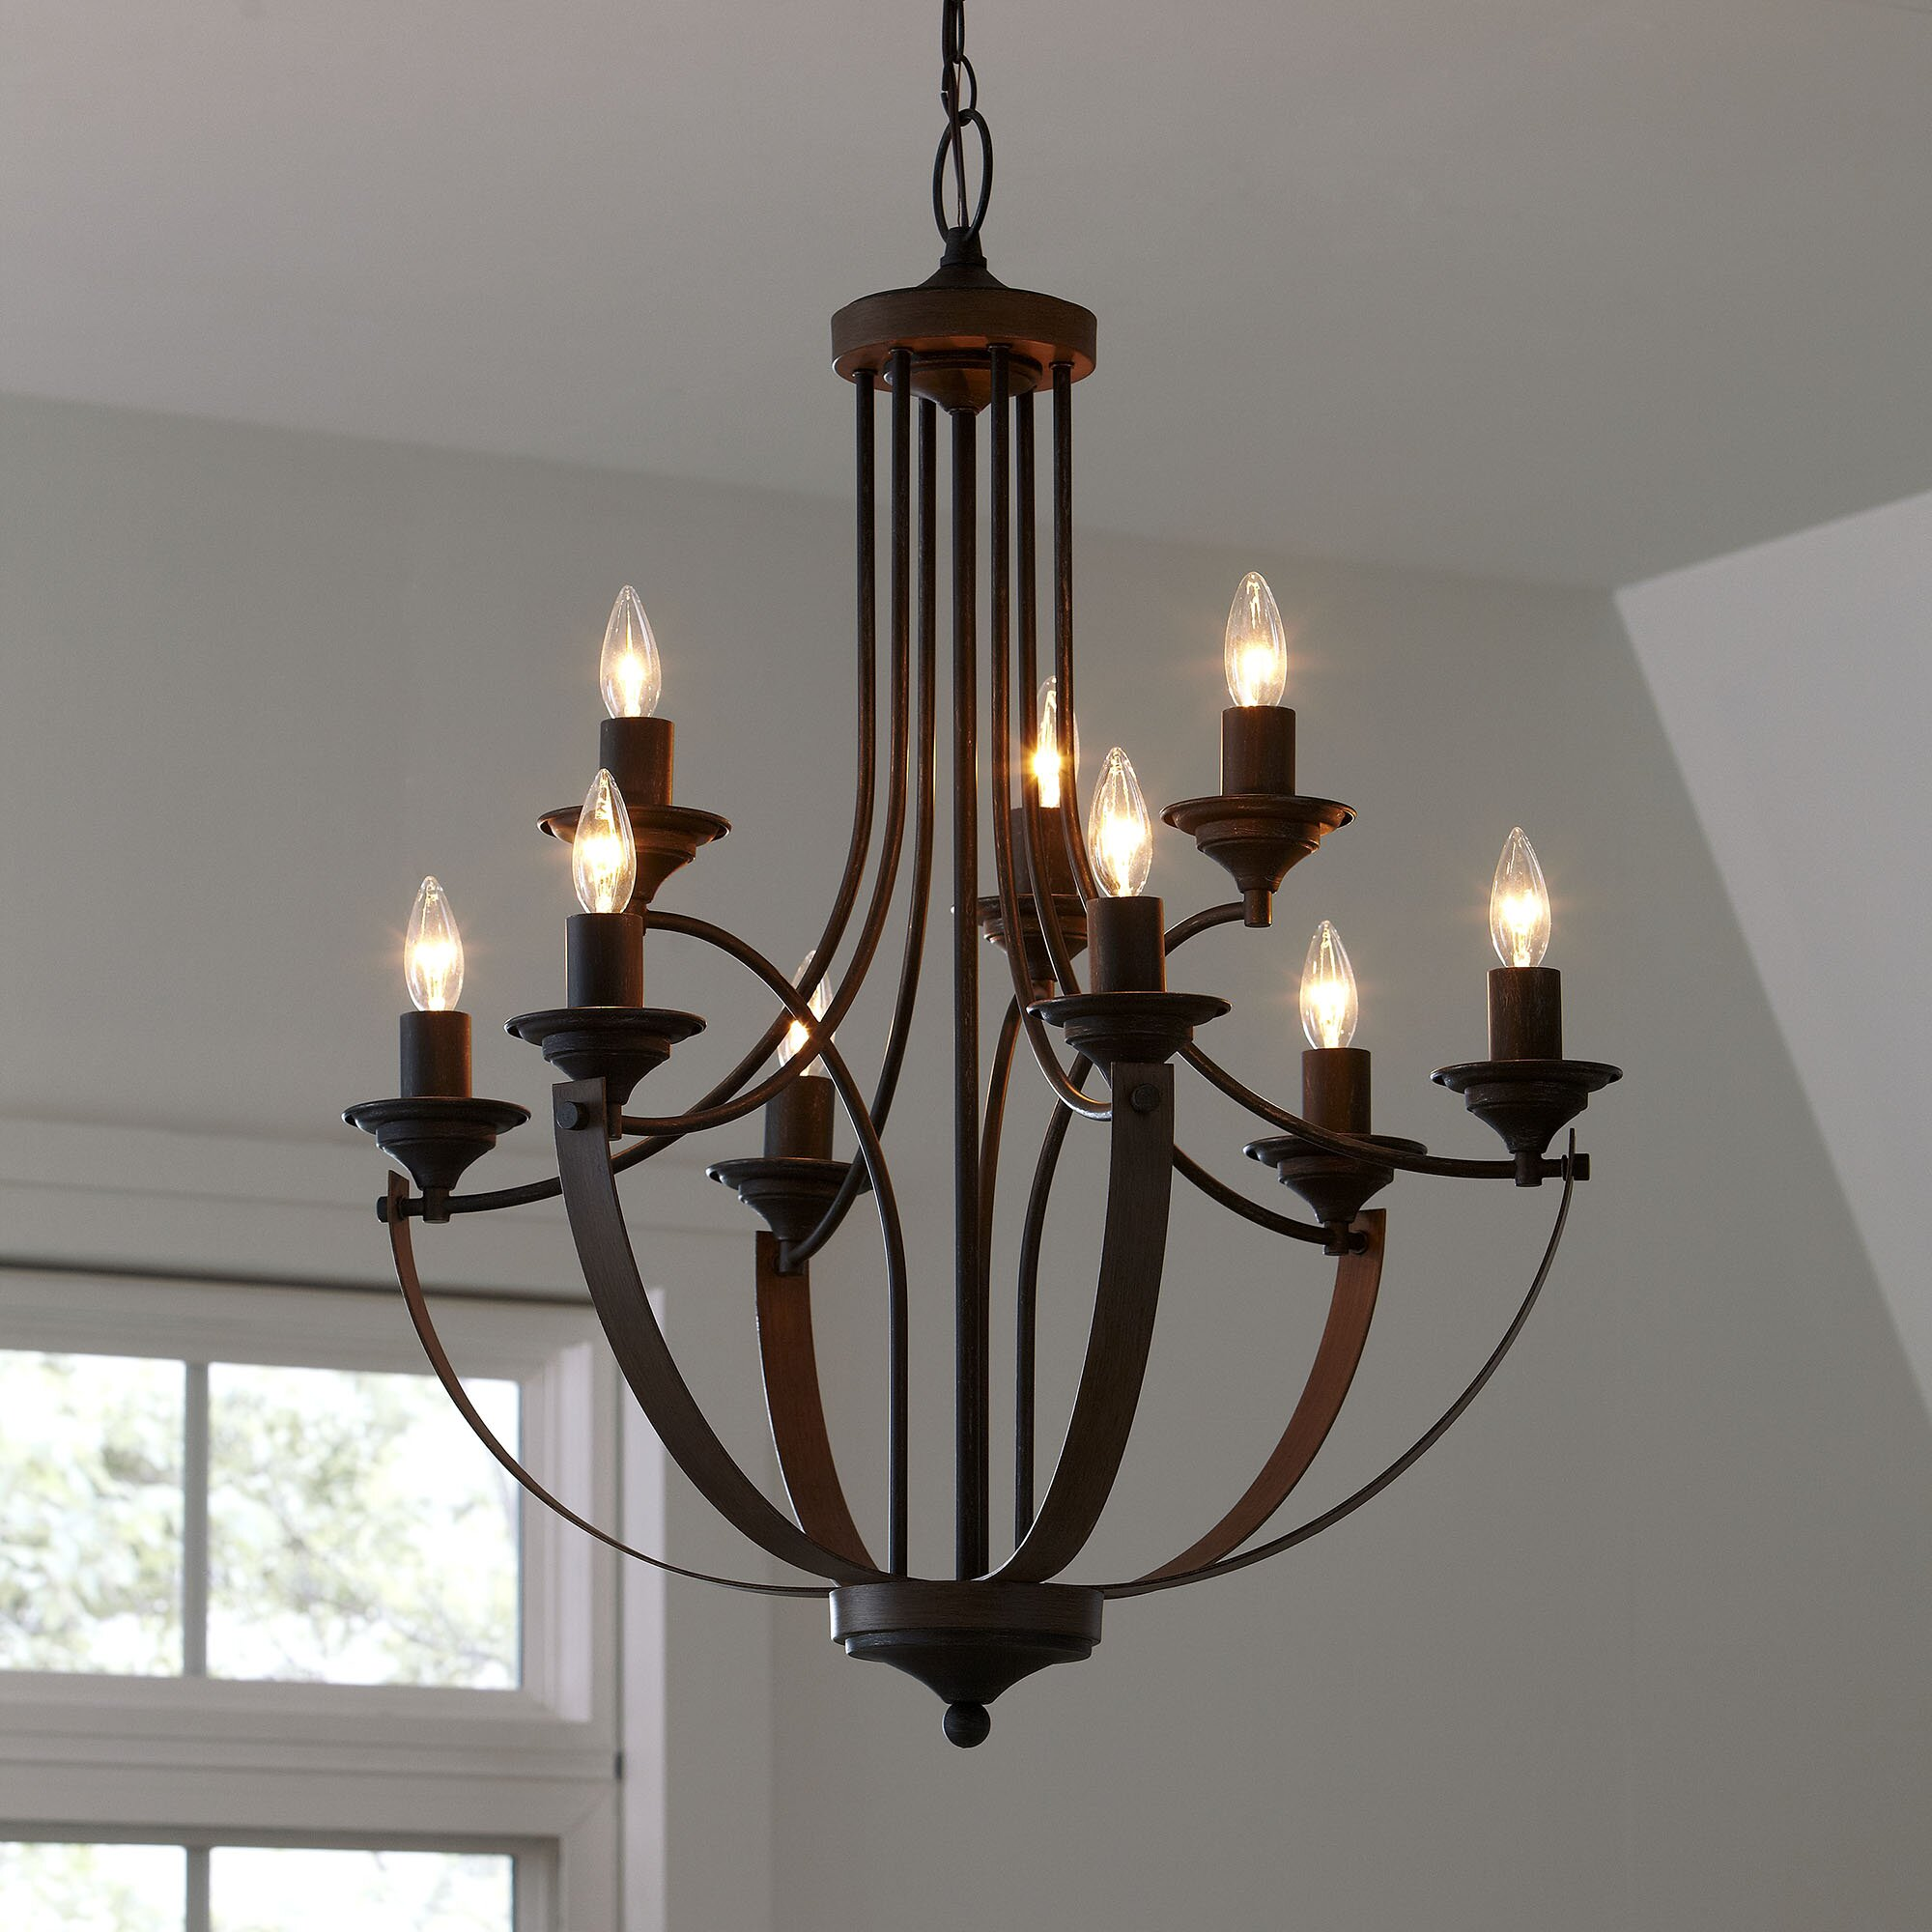 Birch lane camilla chandelier reviews wayfair - Light fixtures chandeliers ...